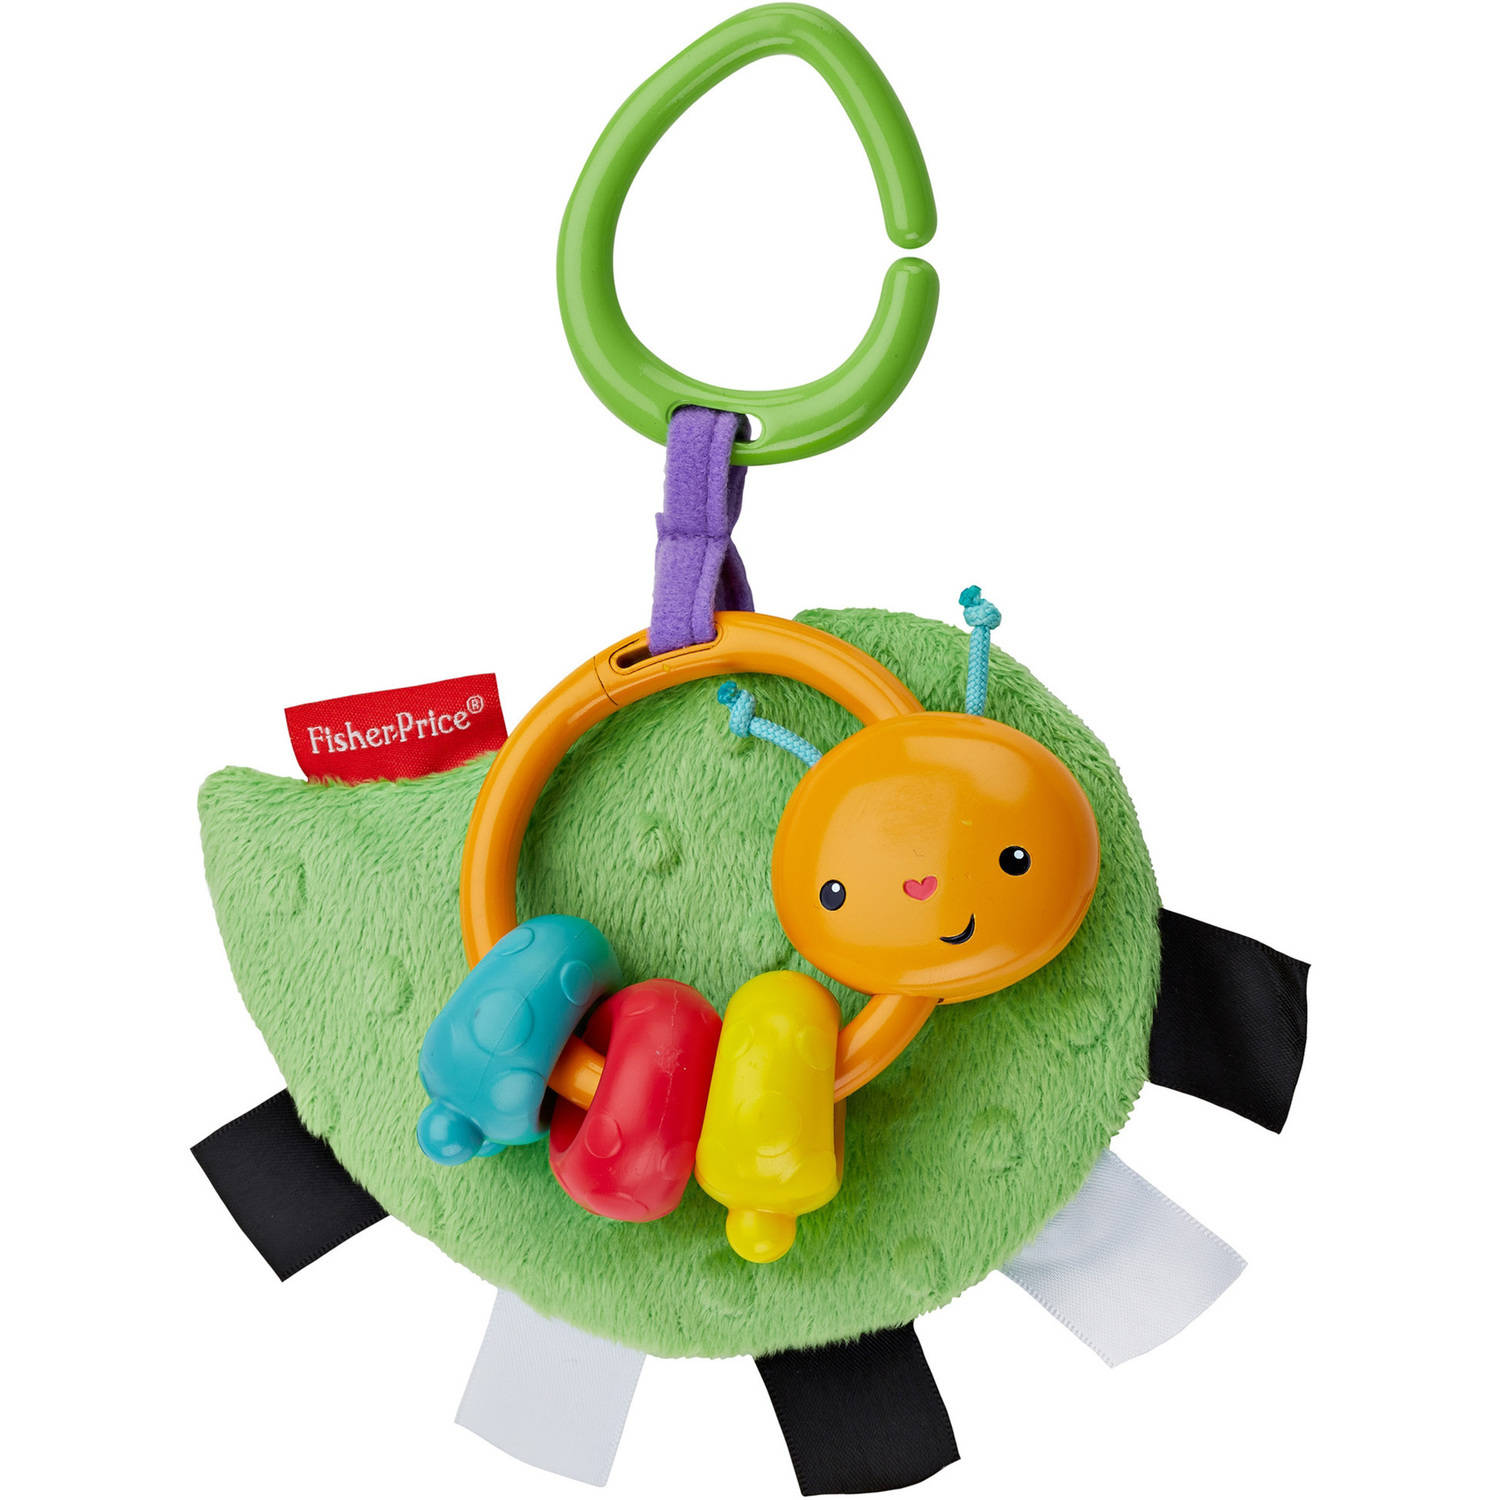 Fisher Price Crinkle 'N Clack Caterpillar by Fisher-Price